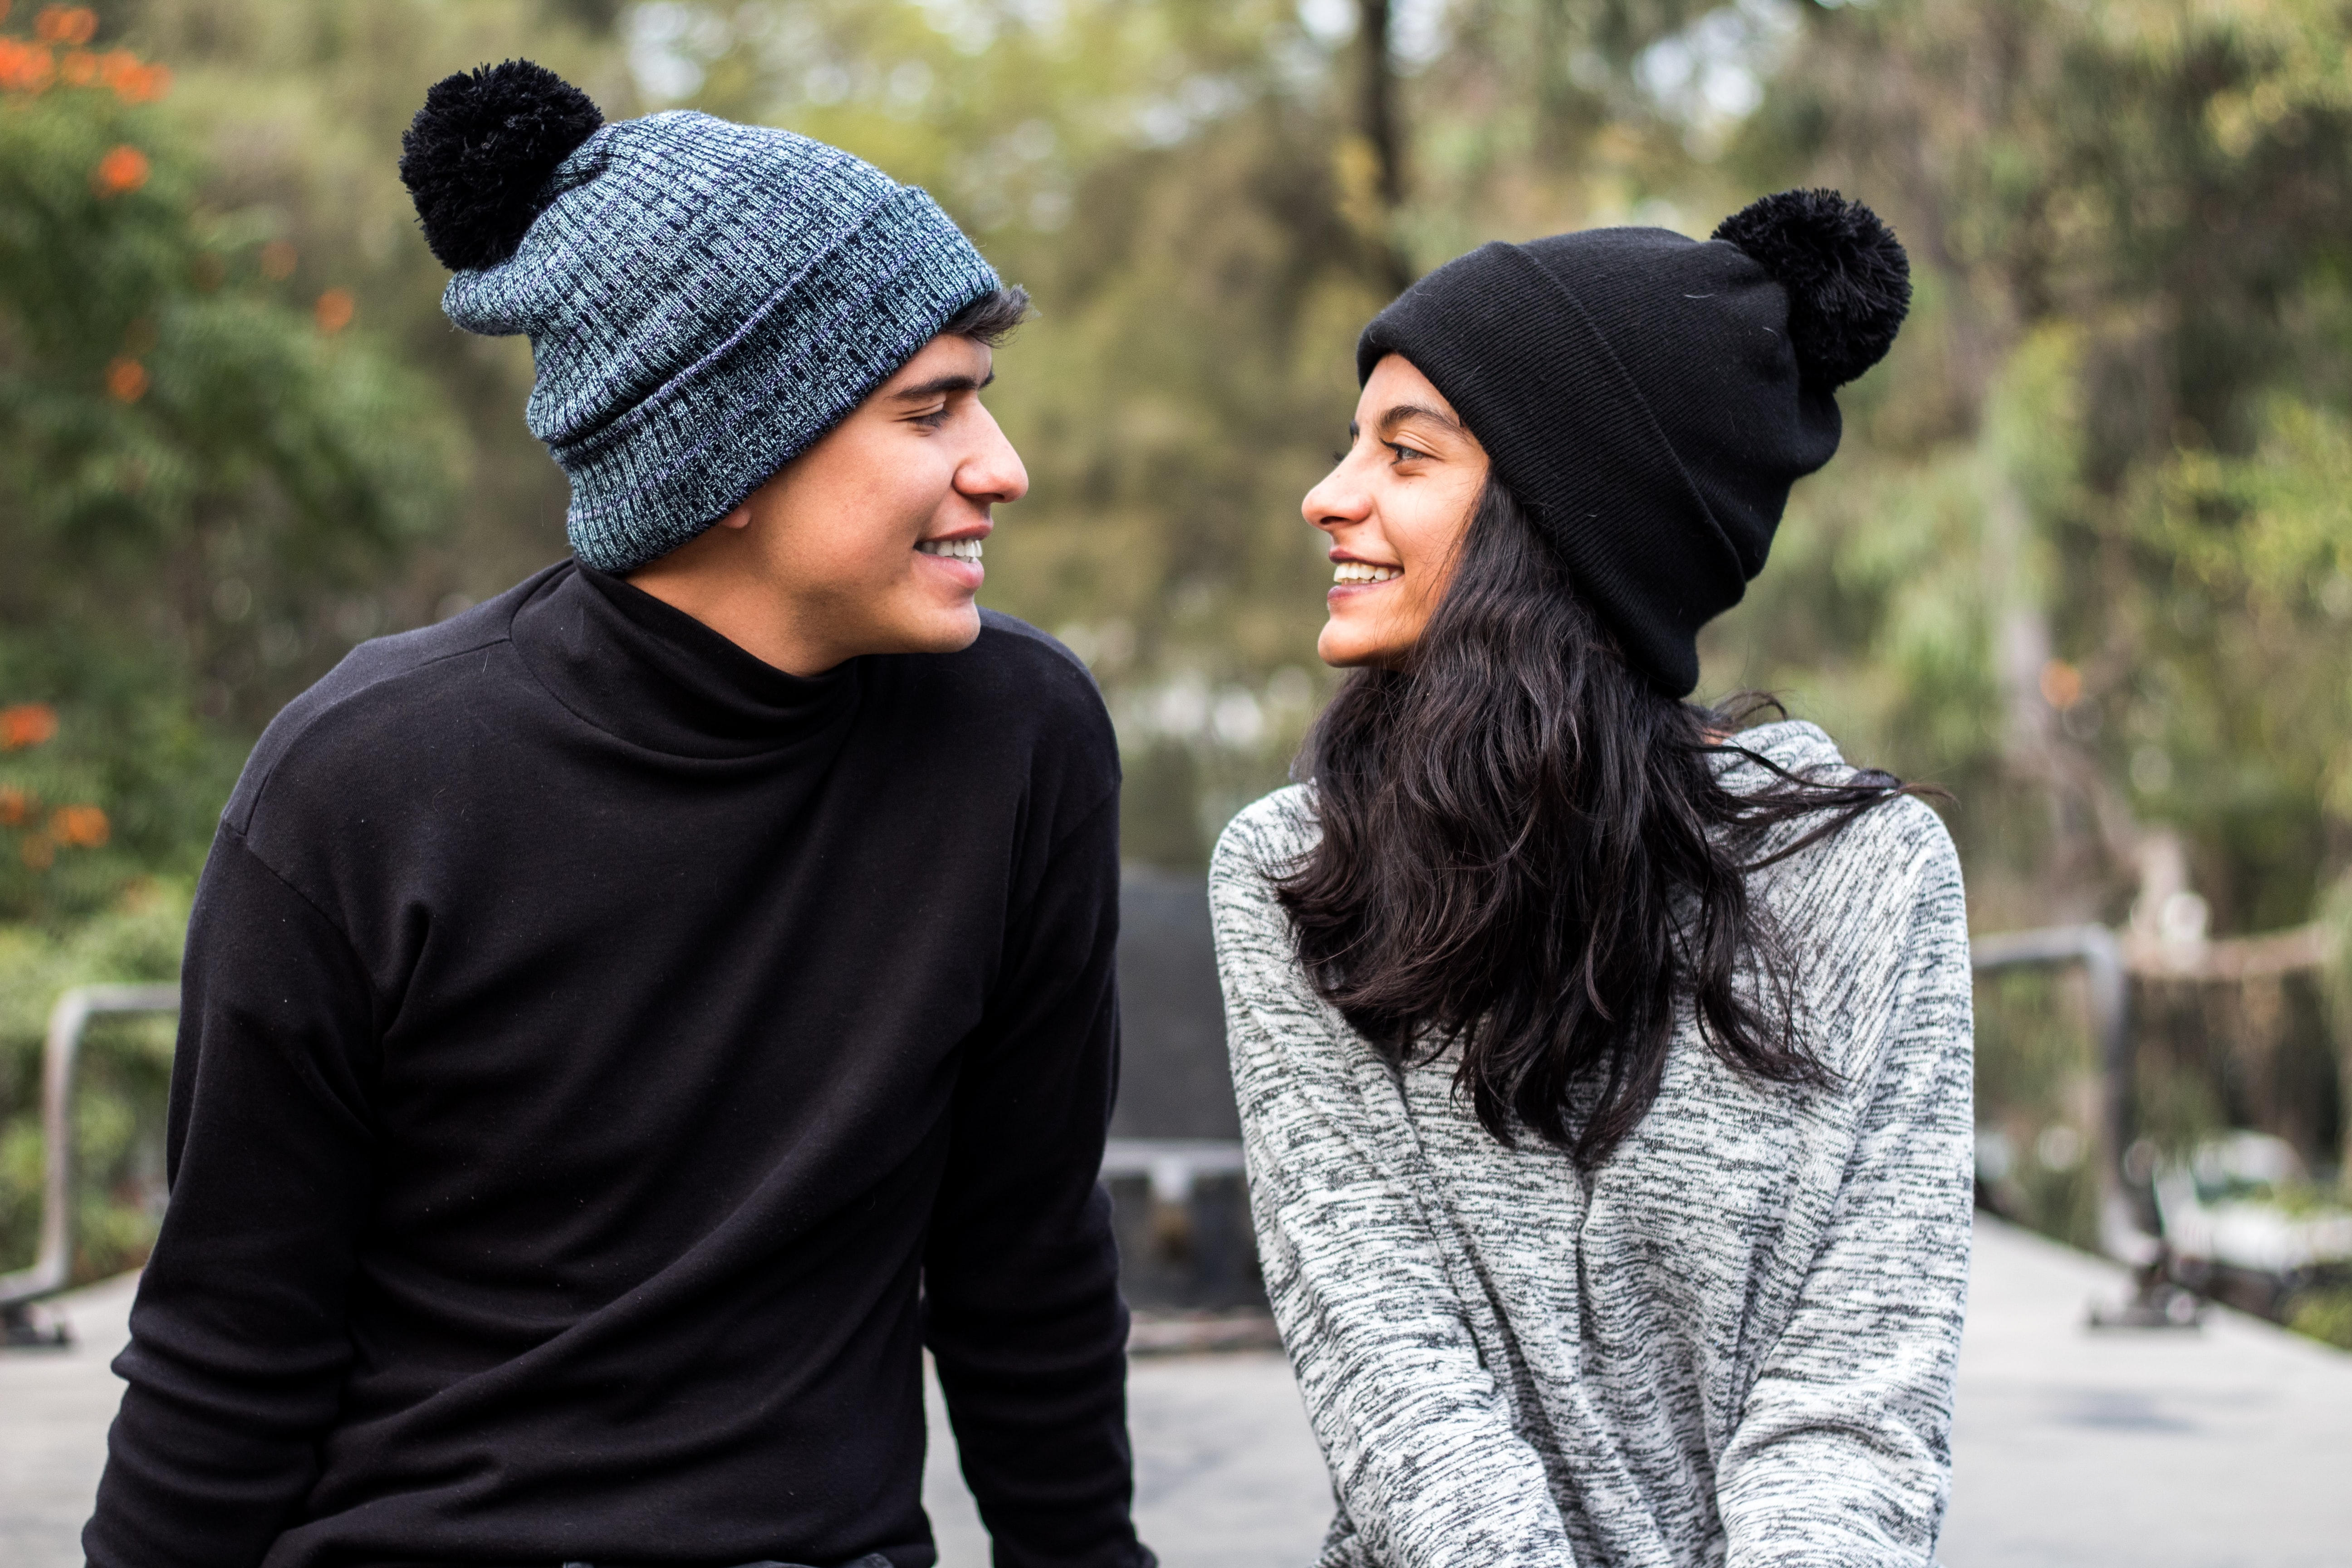 smiling woman sitting in front of the man wearing blue knit cap